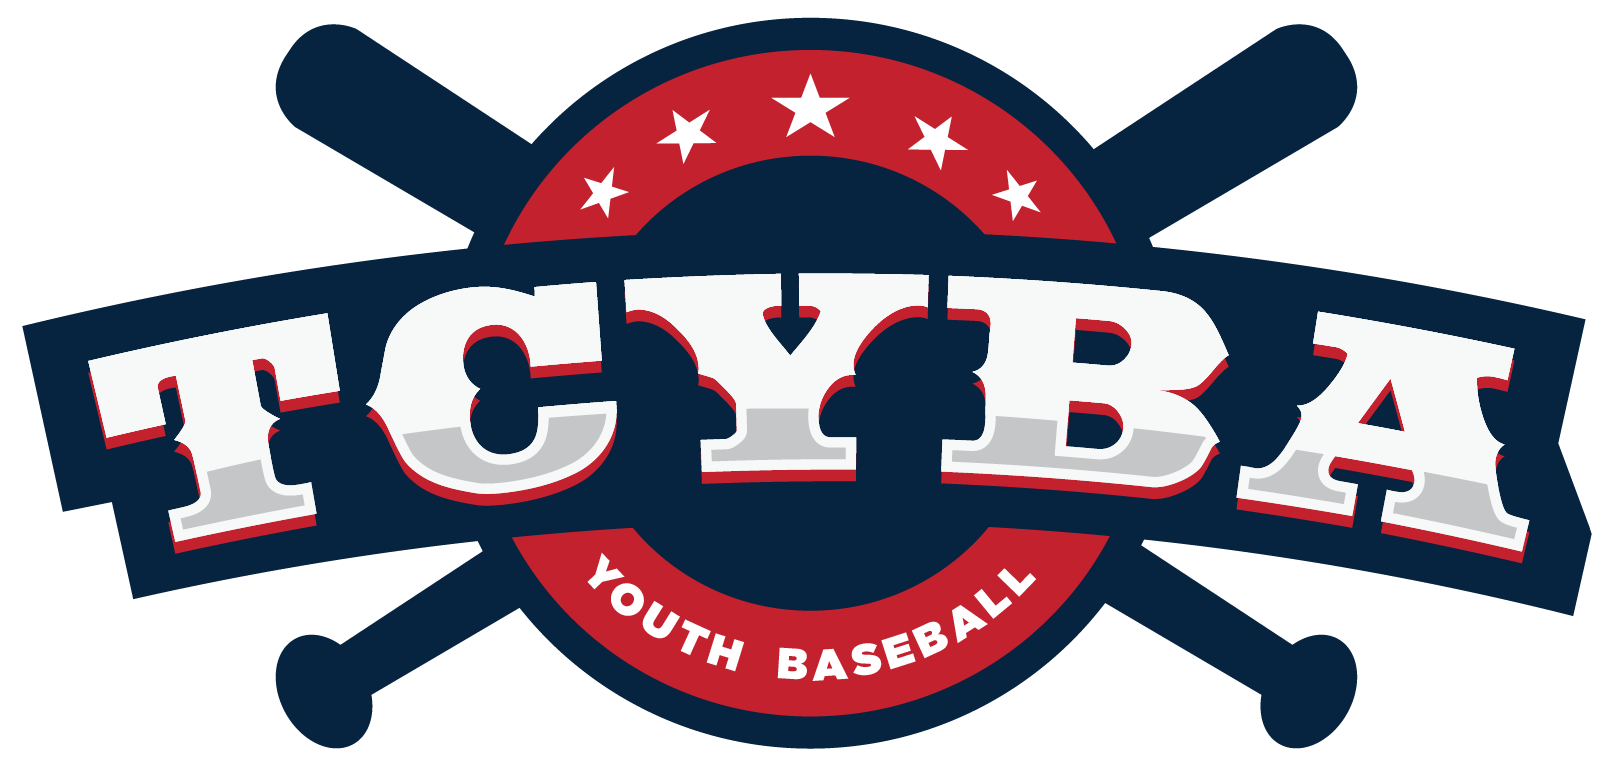 The colony youth association. Volunteering clipart baseball